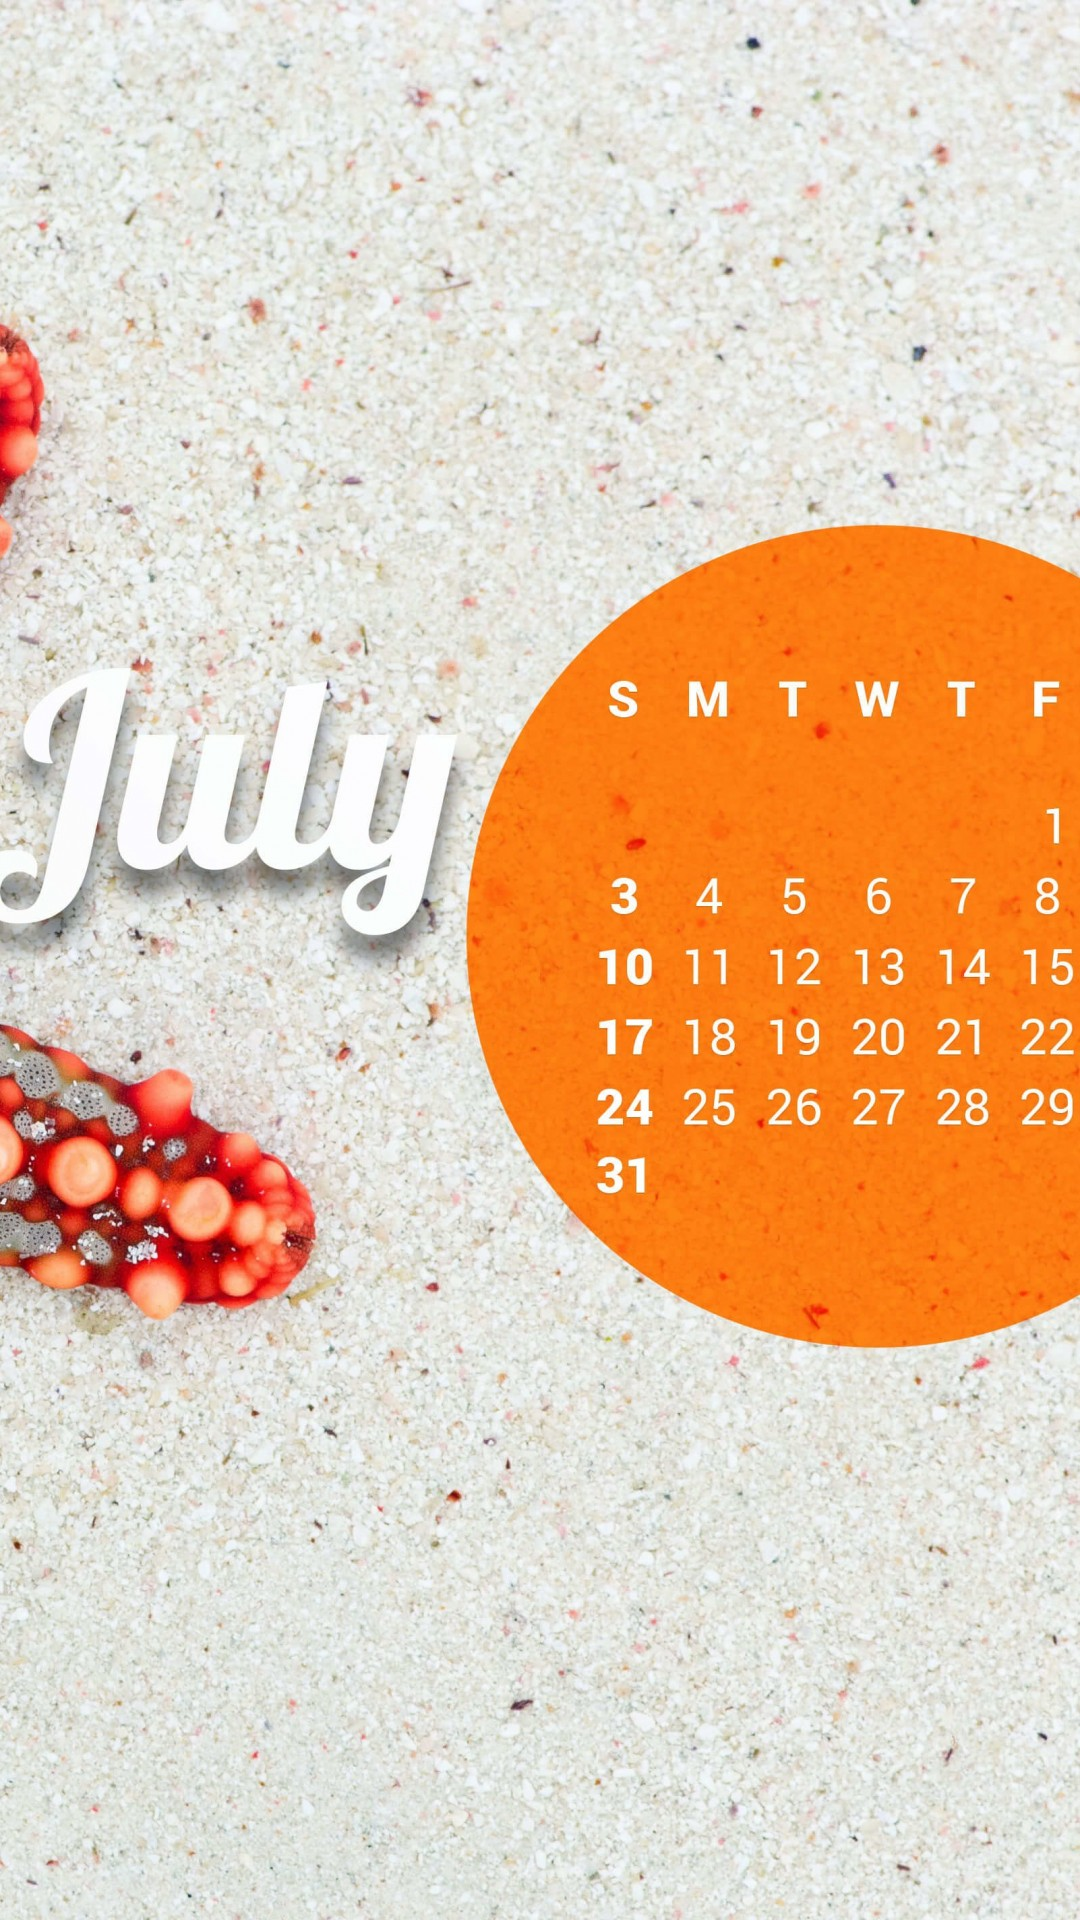 July 2016 Calendar Wallpaper for LG G2